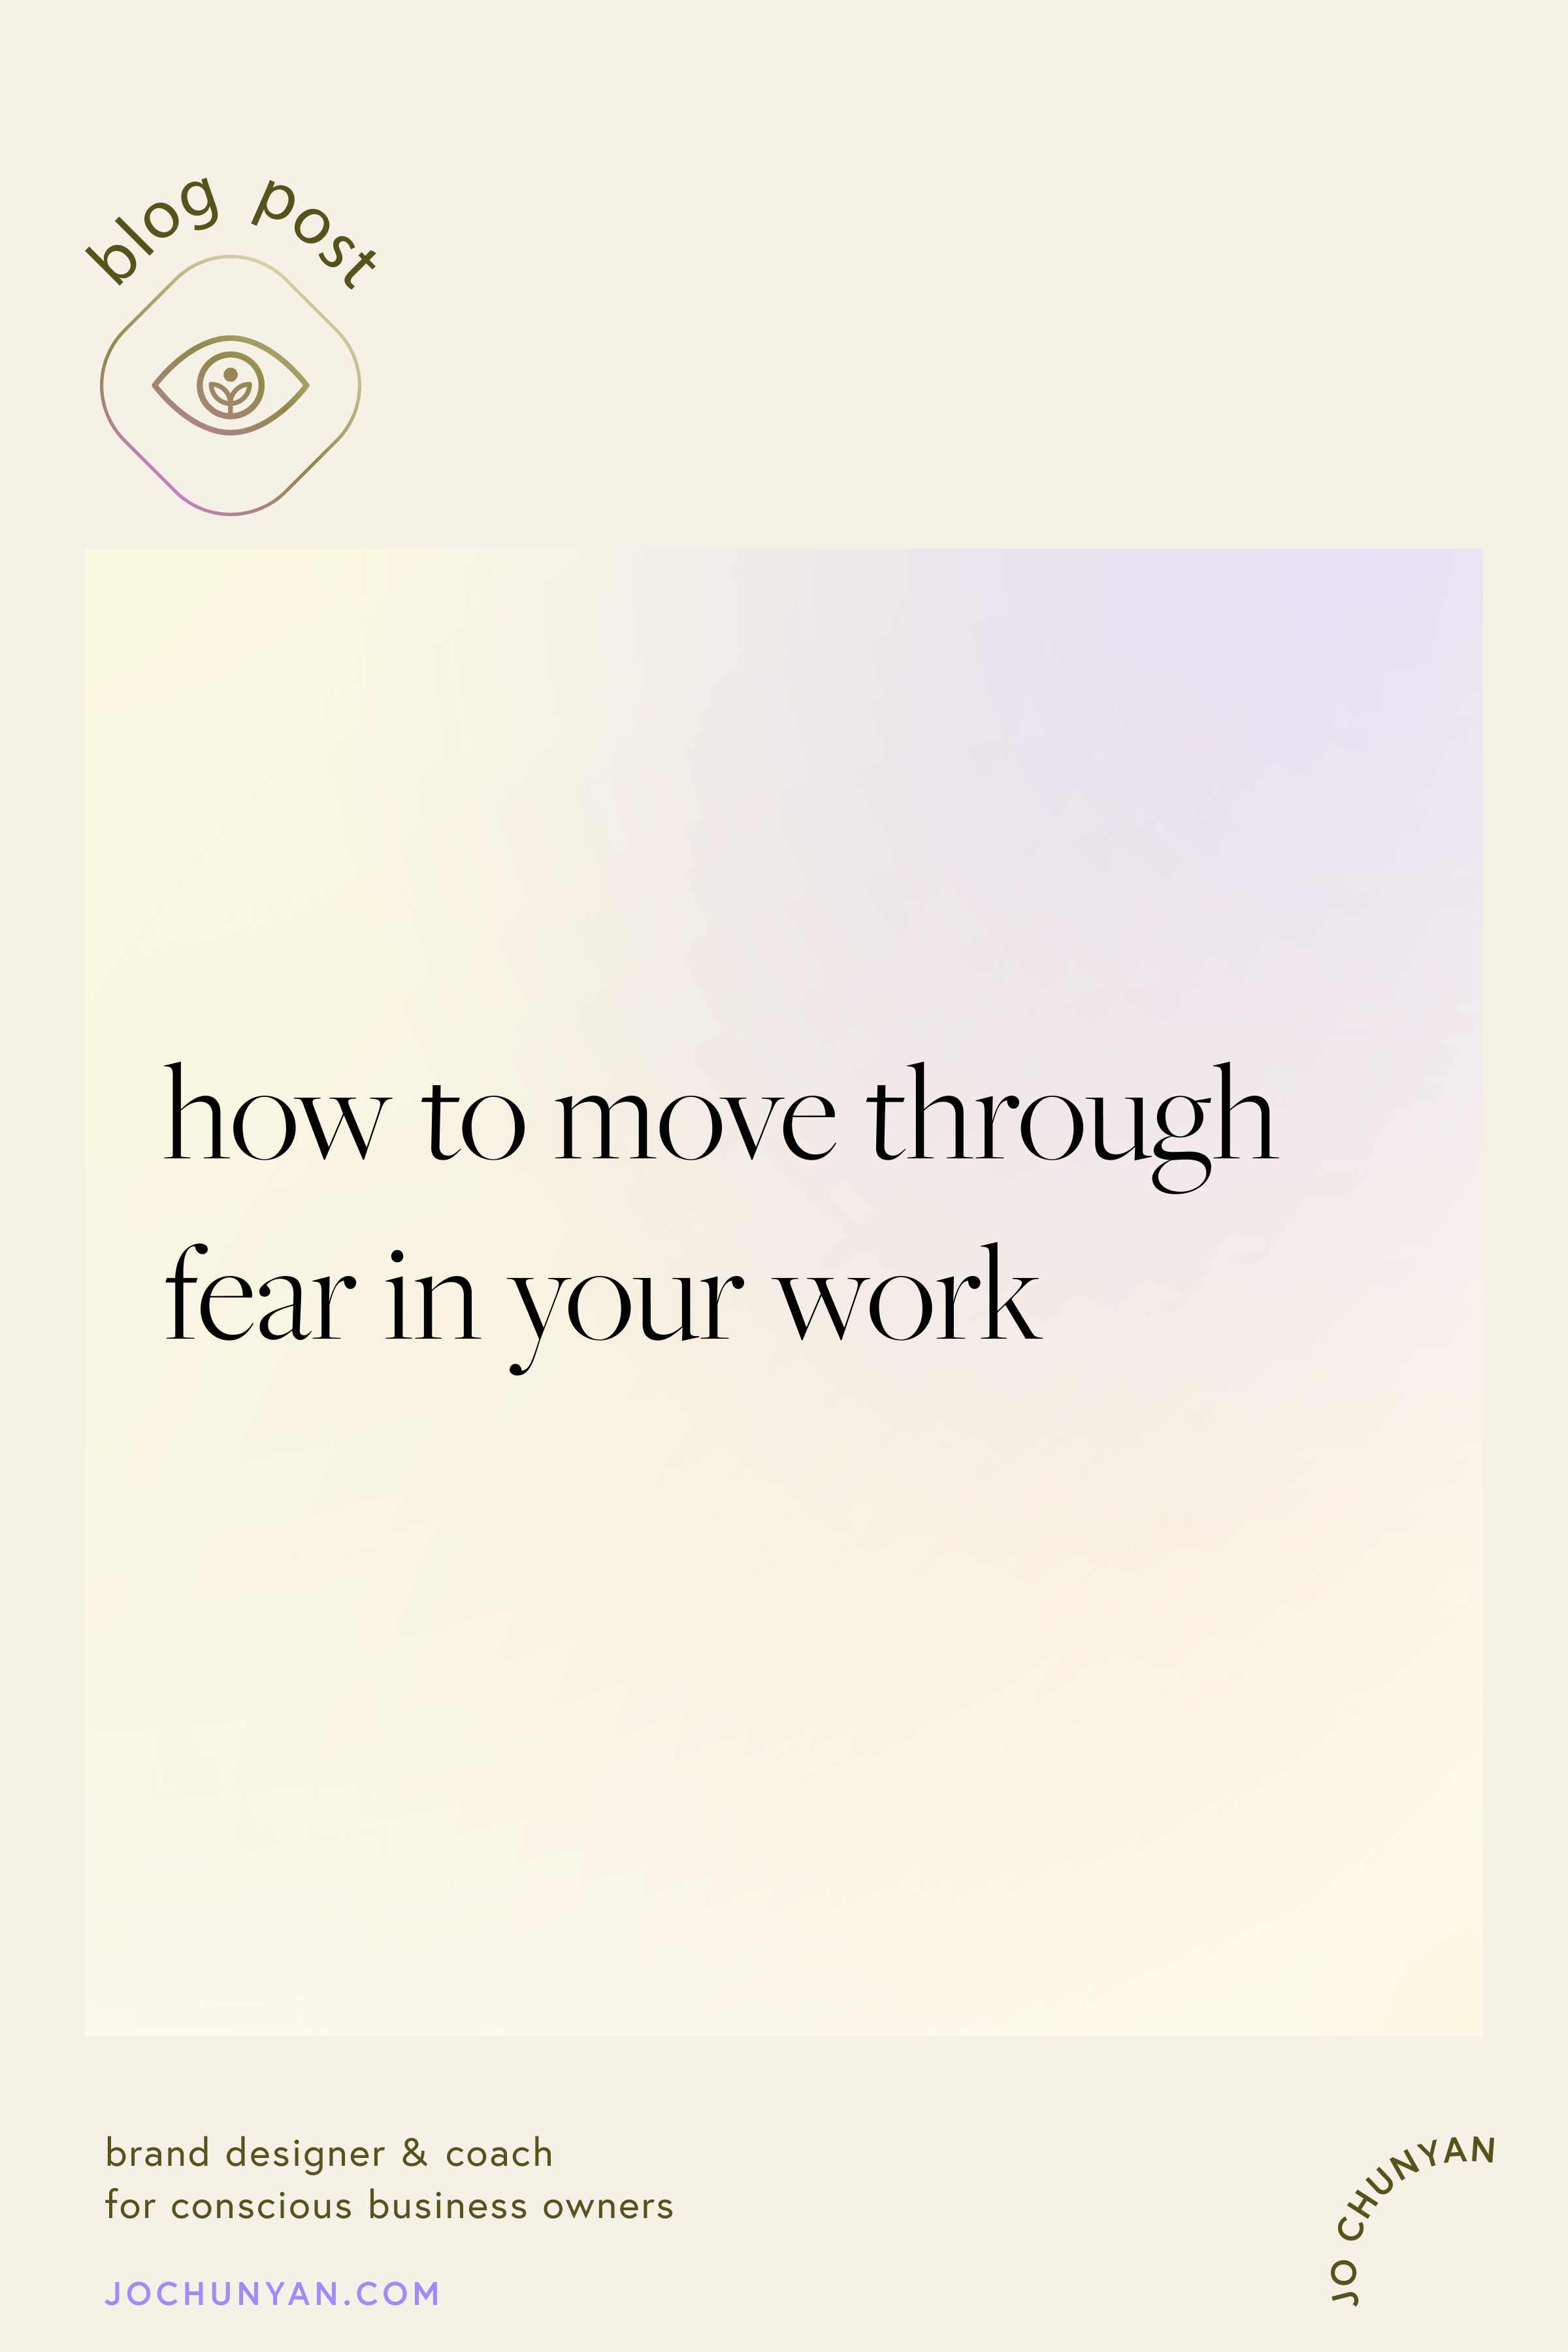 How to move through fear in your work